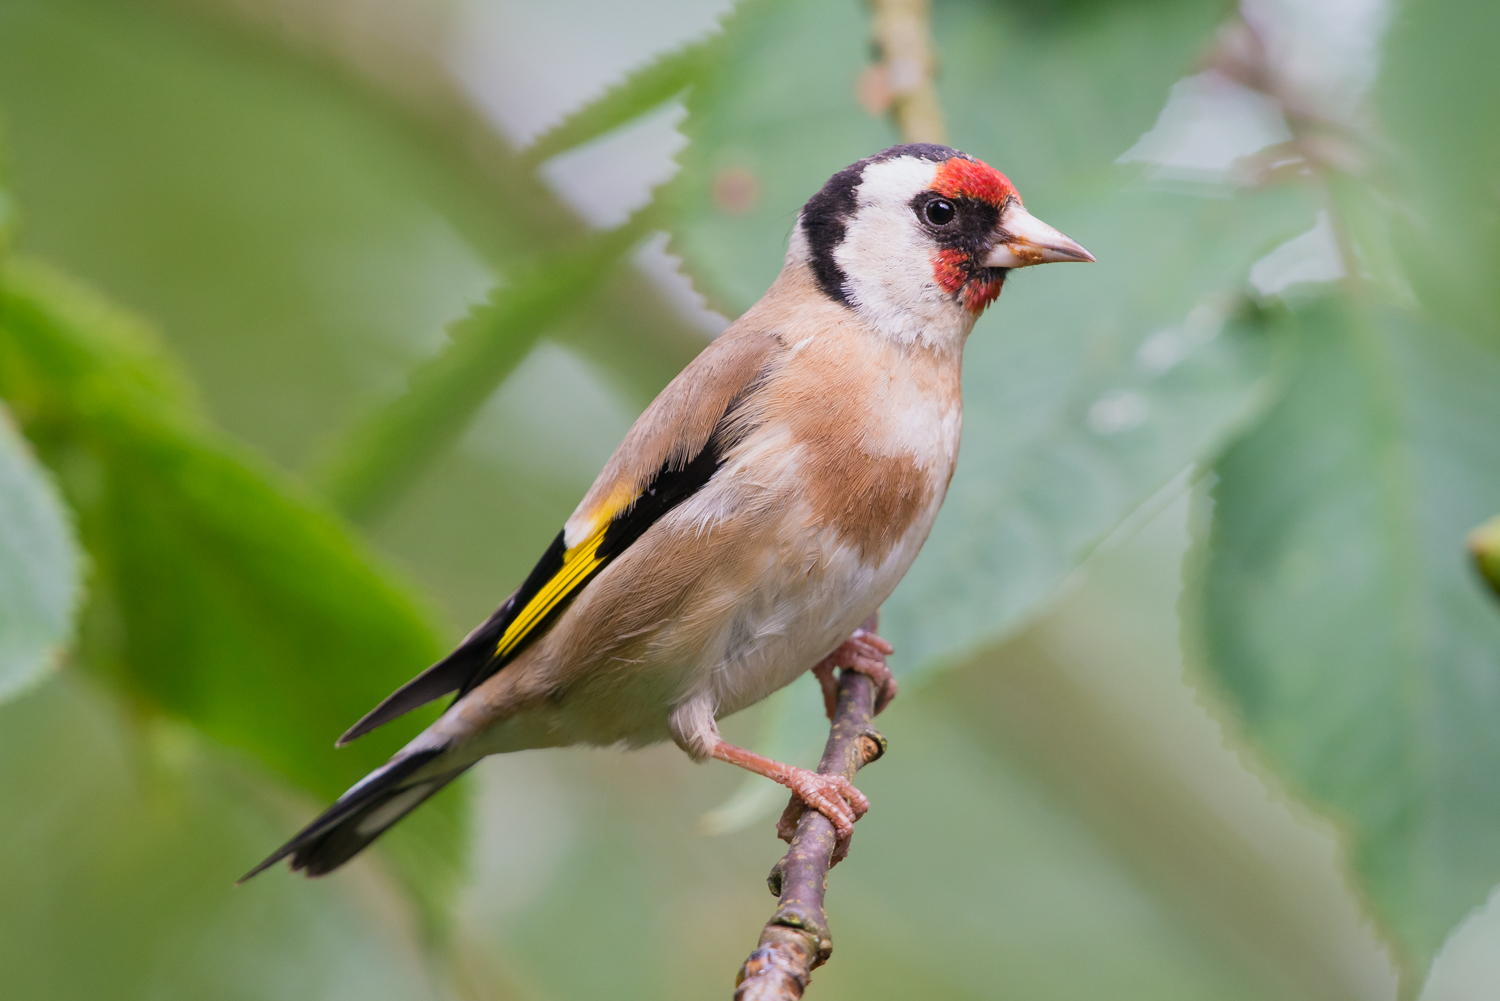 European Goldfinch, British birds, wildlife